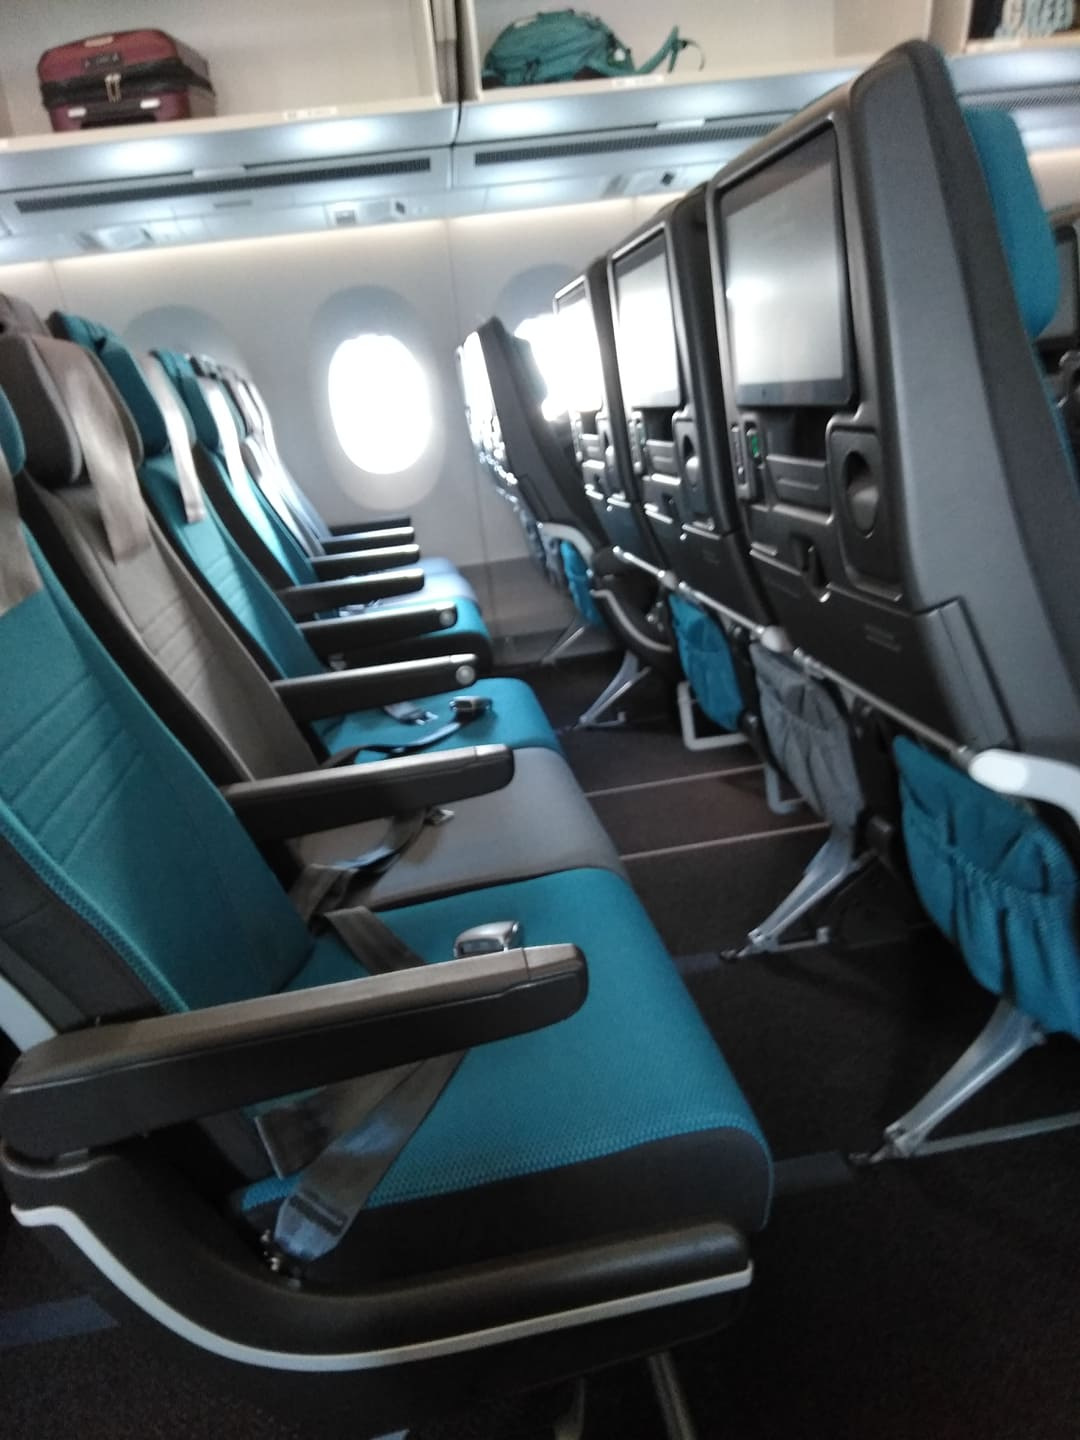 empty row of blue seats on a plane